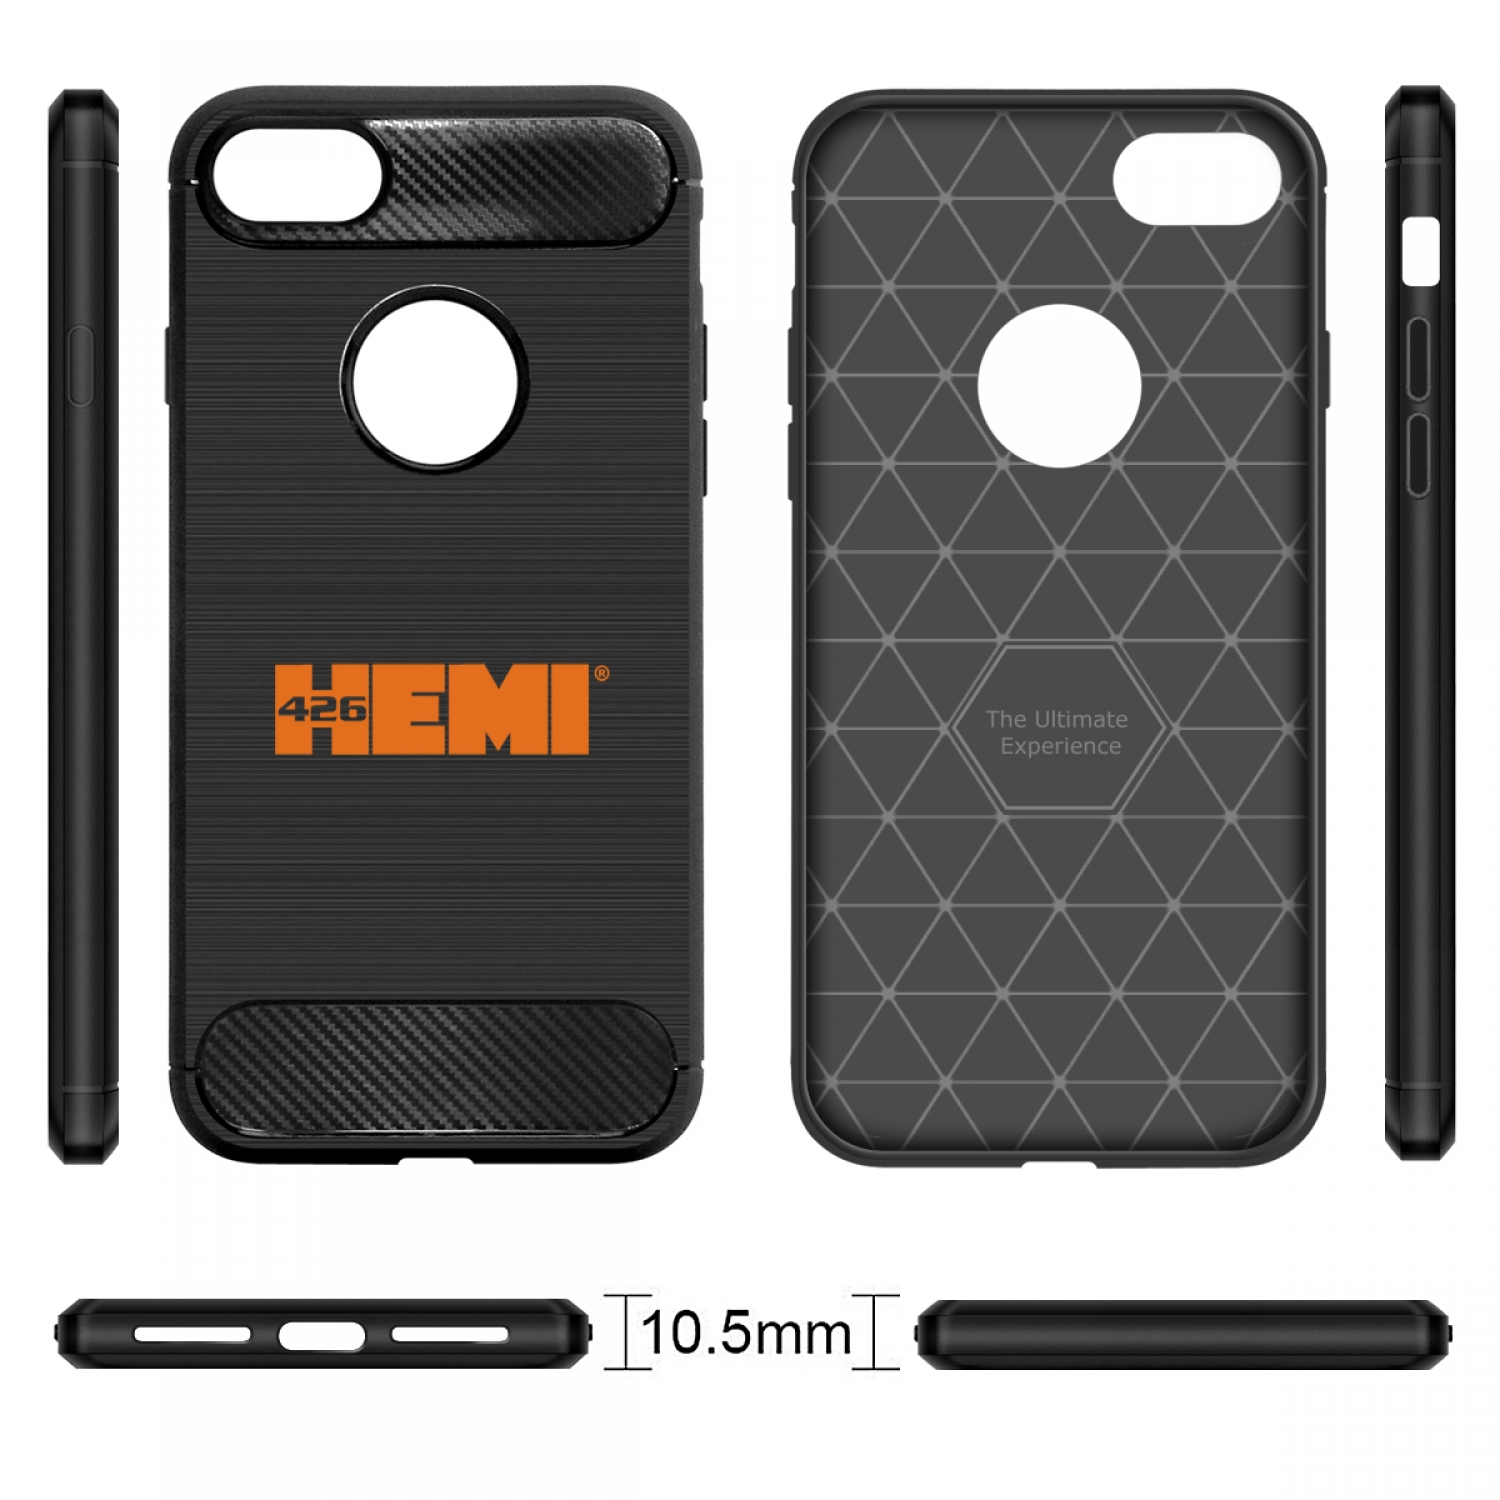 iPhone 7 Case, HEMI 426 in HEMI Black TPU Shockproof Carbon Fiber Textures Cell Phone Case